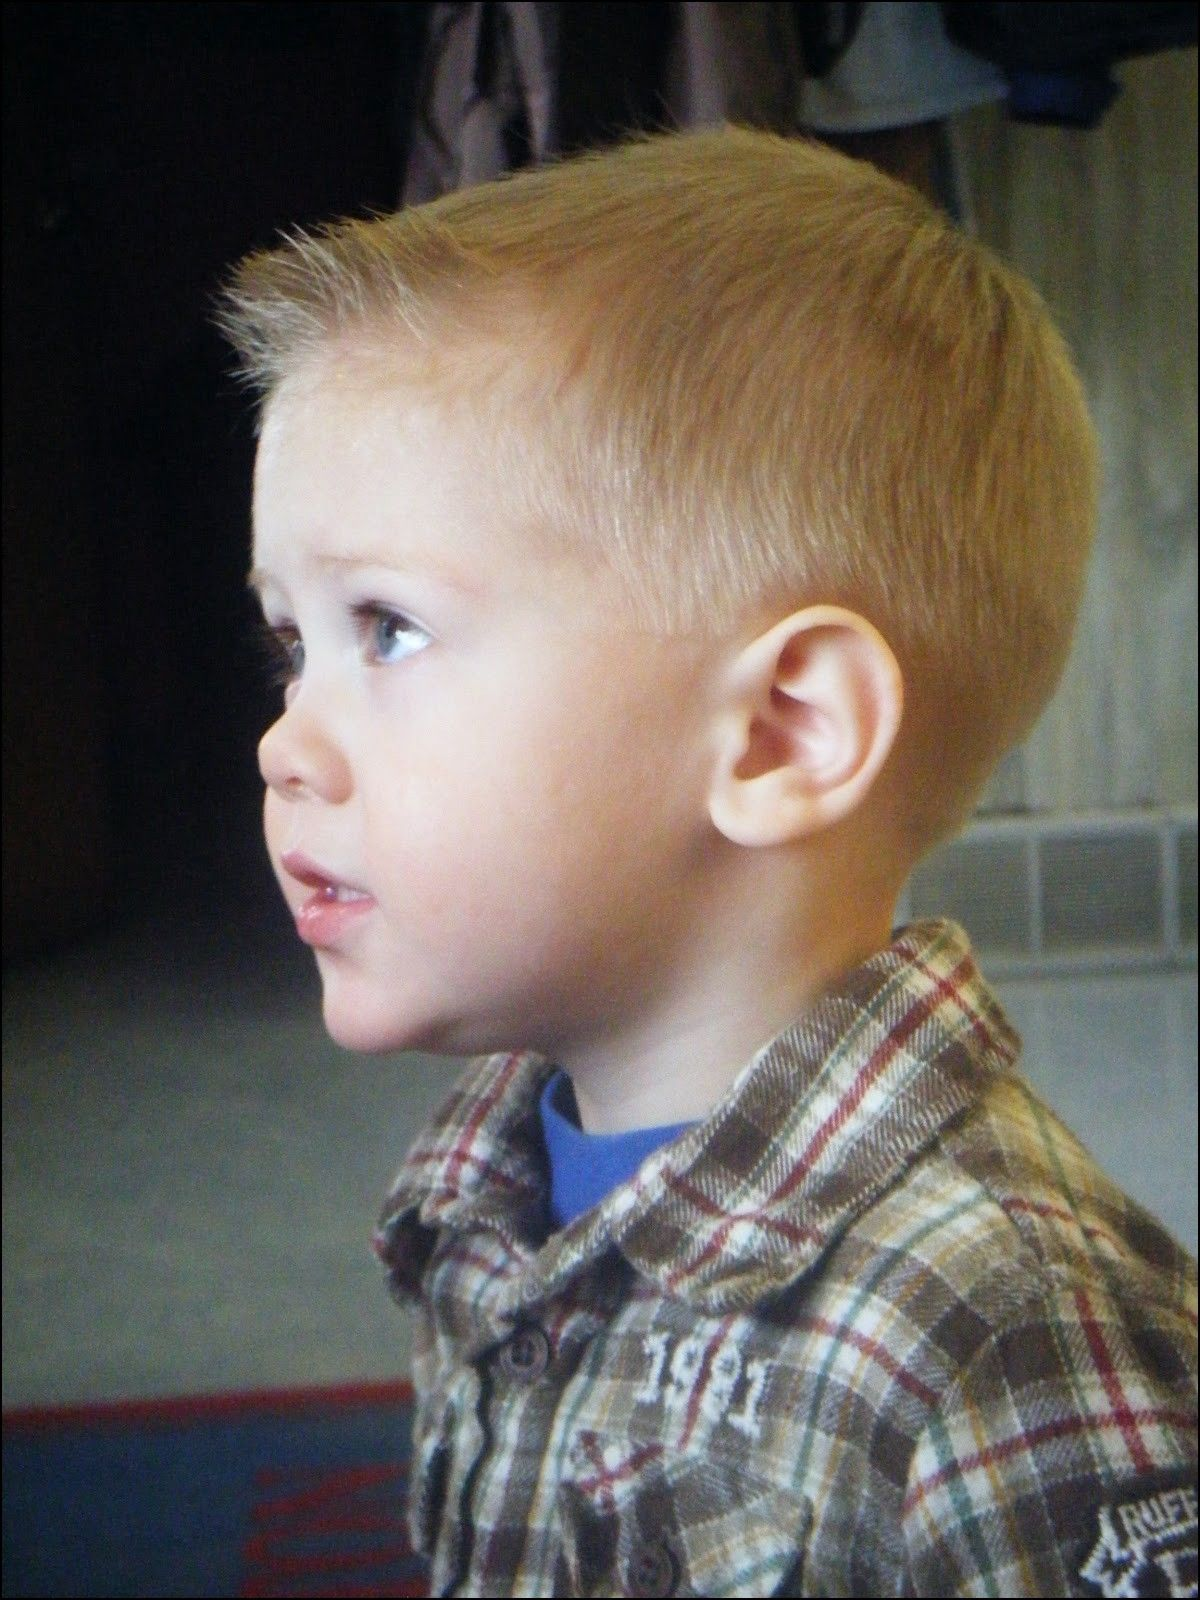 Haircut For 1 Year Old Boy Boys Haircuts Baby Boy Haircuts Little Boy Haircuts